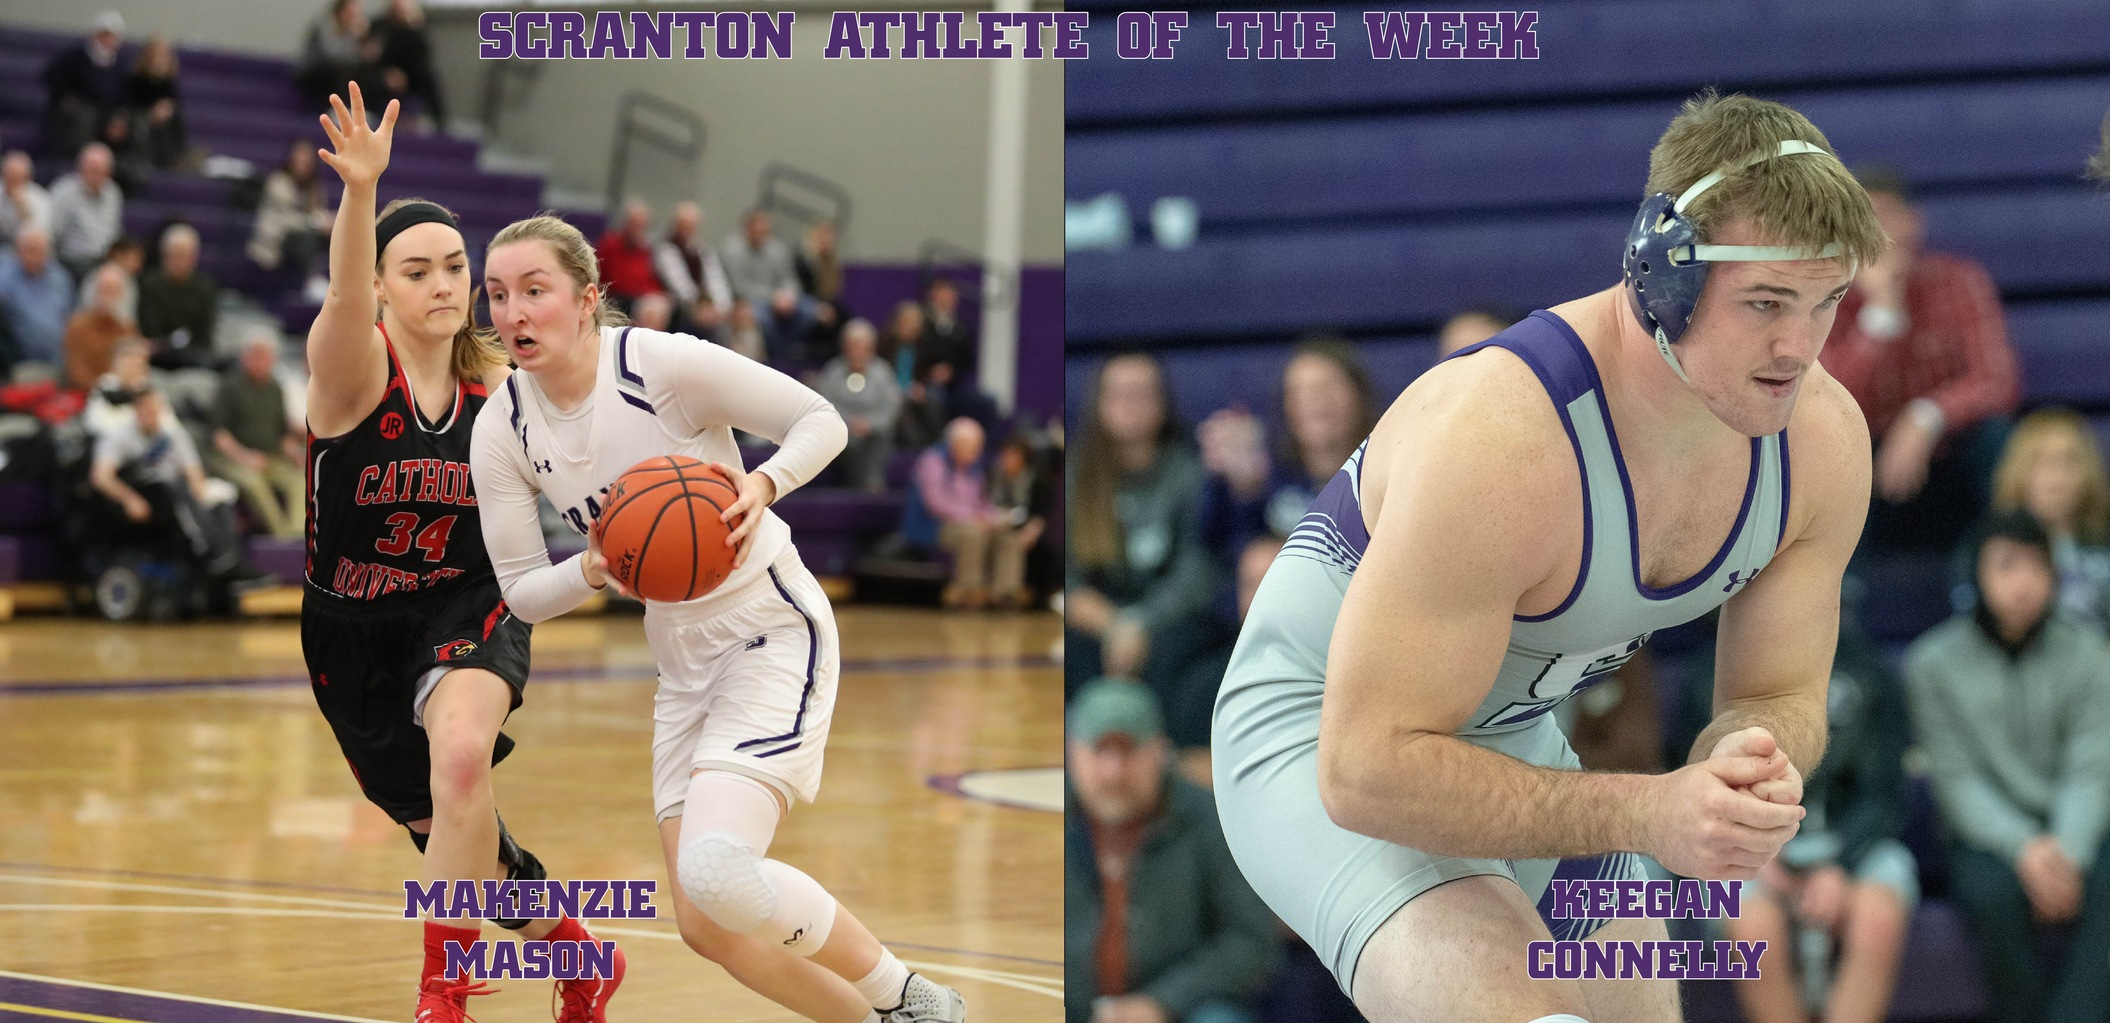 Seniors Makenzie Mason and Keegan Connelly were named Co-Scranton Athletes of the Week on Monday.